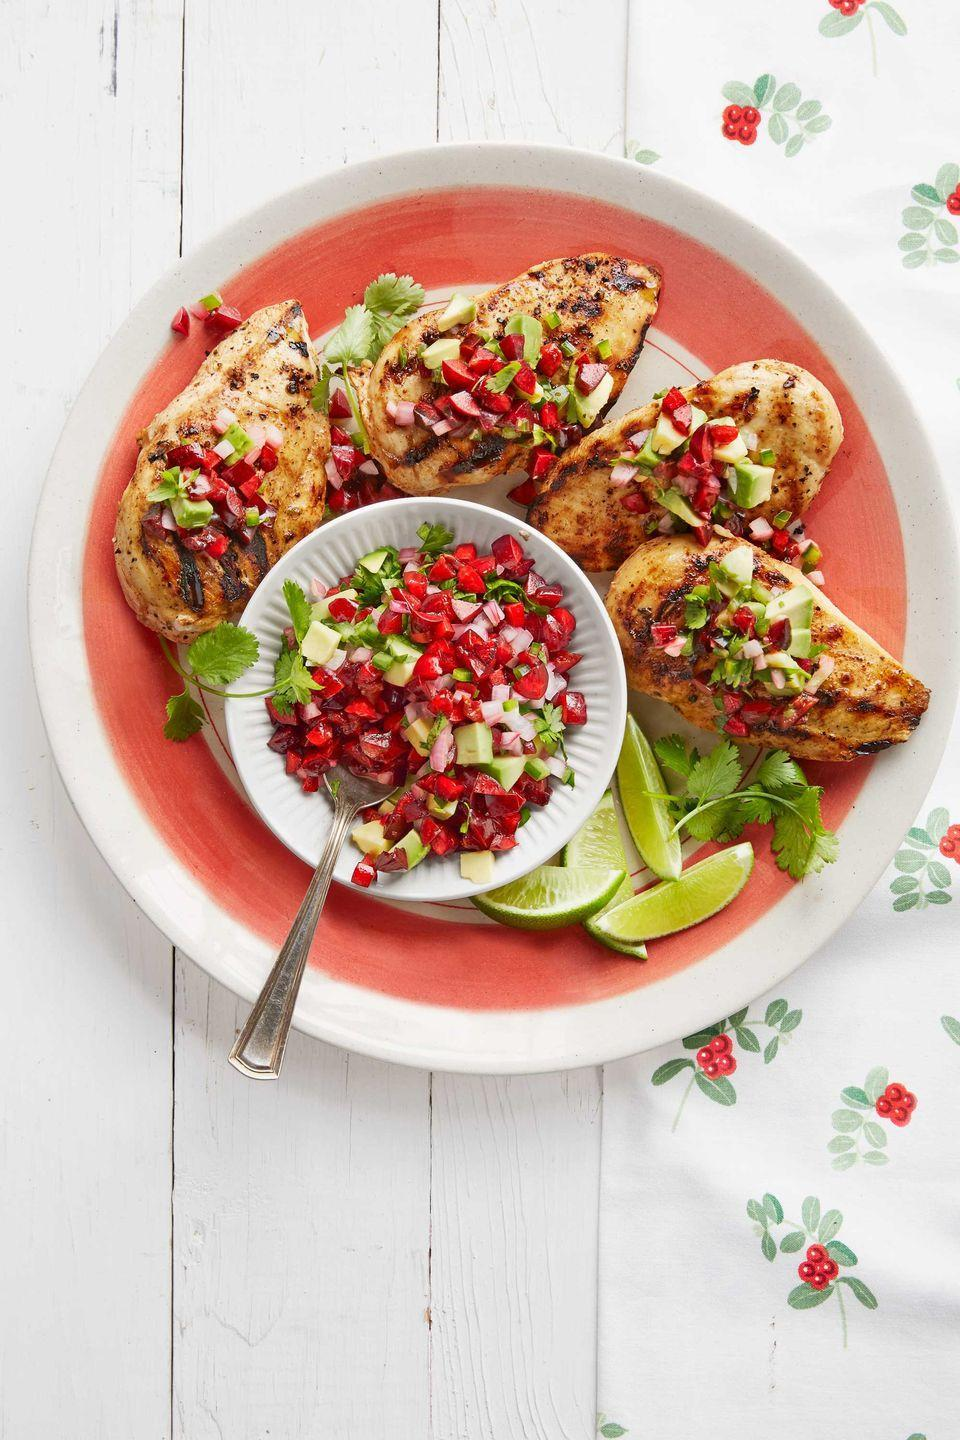 "<p>Grilled chicken gets a lift with this flavor-packed marinade and fresh, fruity salsa.</p><p><a href=""https://www.countryliving.com/food-drinks/recipes/a38958/chili-garlic-grilled-chicken-with-avocado-cherry-salsa-recipe/"" rel=""nofollow noopener"" target=""_blank"" data-ylk=""slk:Get the recipe."" class=""link rapid-noclick-resp""><strong>Get the recipe.</strong></a></p>"